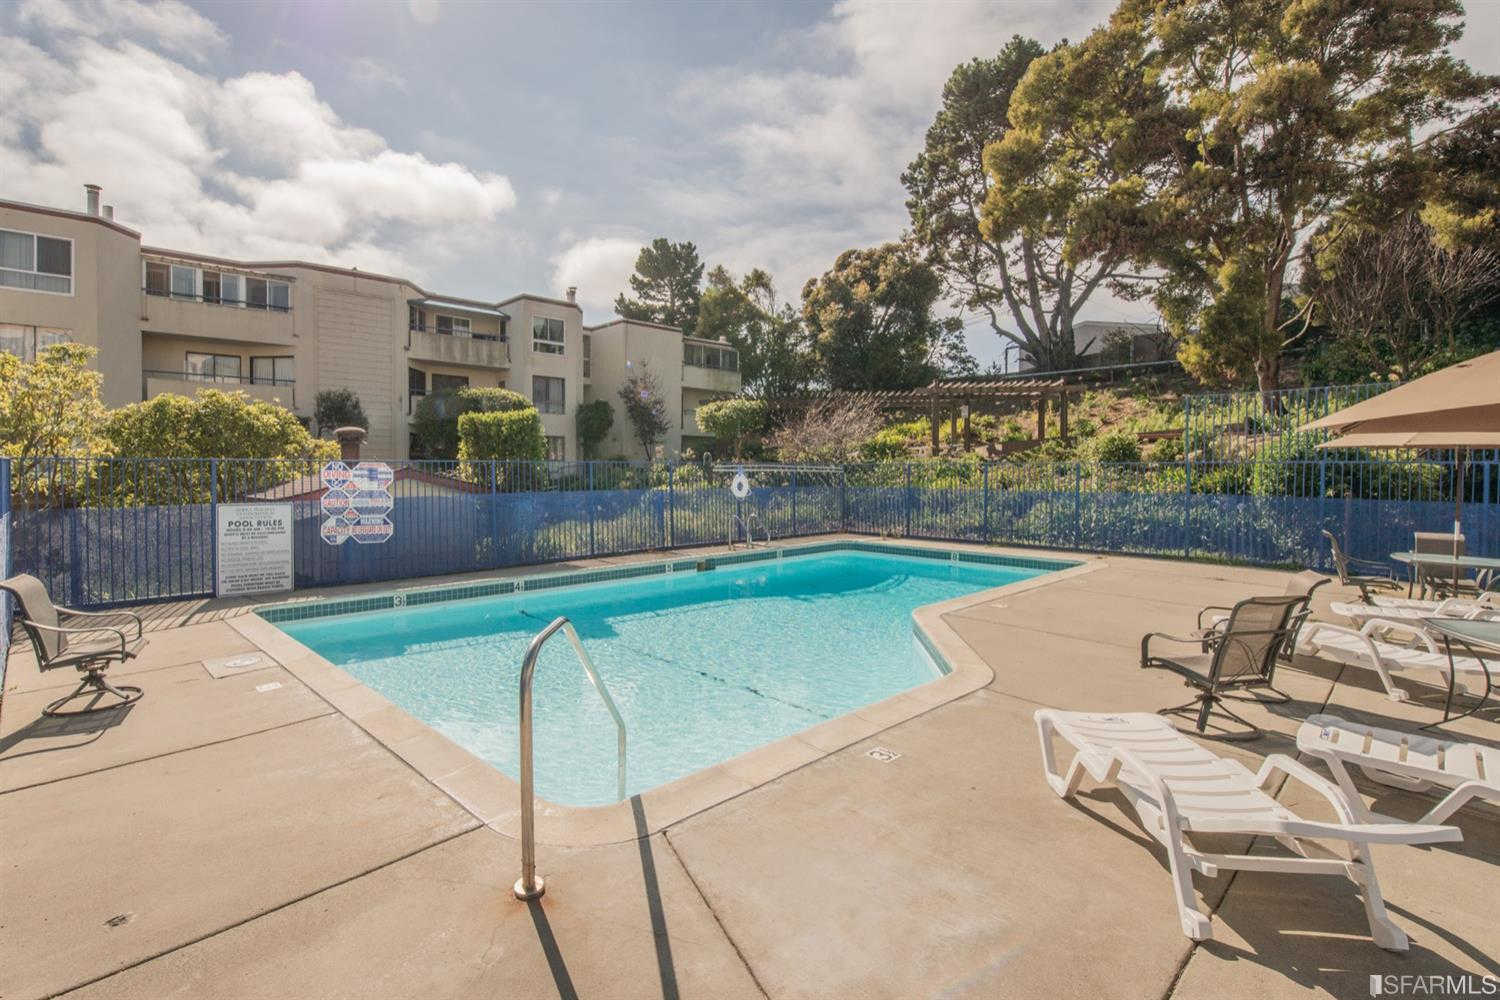 1551 Southgate Avenue #274, Daly City, CA 94015 has an Open House on  Sunday, July 14, 2019 2:00 PM to 4:00 PM